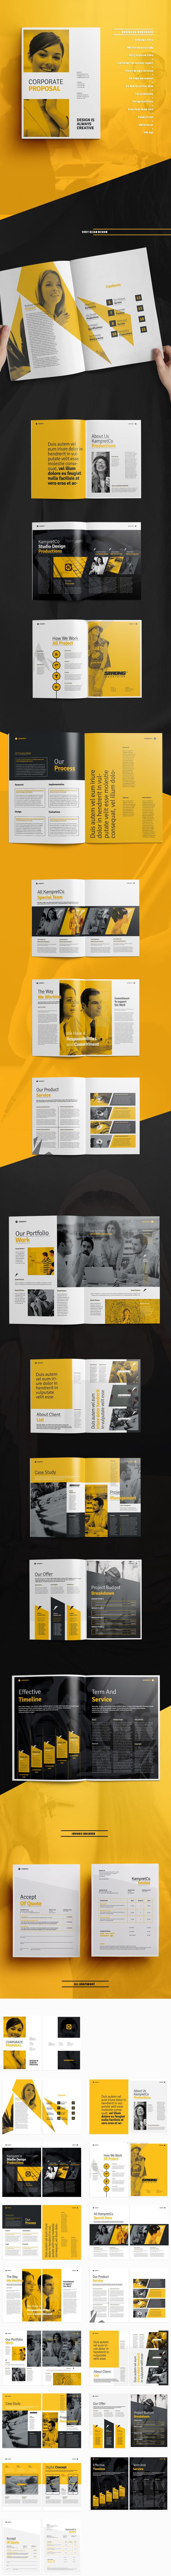 a4, agency proposal, brand, brief, brochure design, business, business proposal, clean, corporate, creative, design, egotype, identity, indesign, indesign templates, informational, light, minimal, modern, moscovita, professional, project proposal, propos…